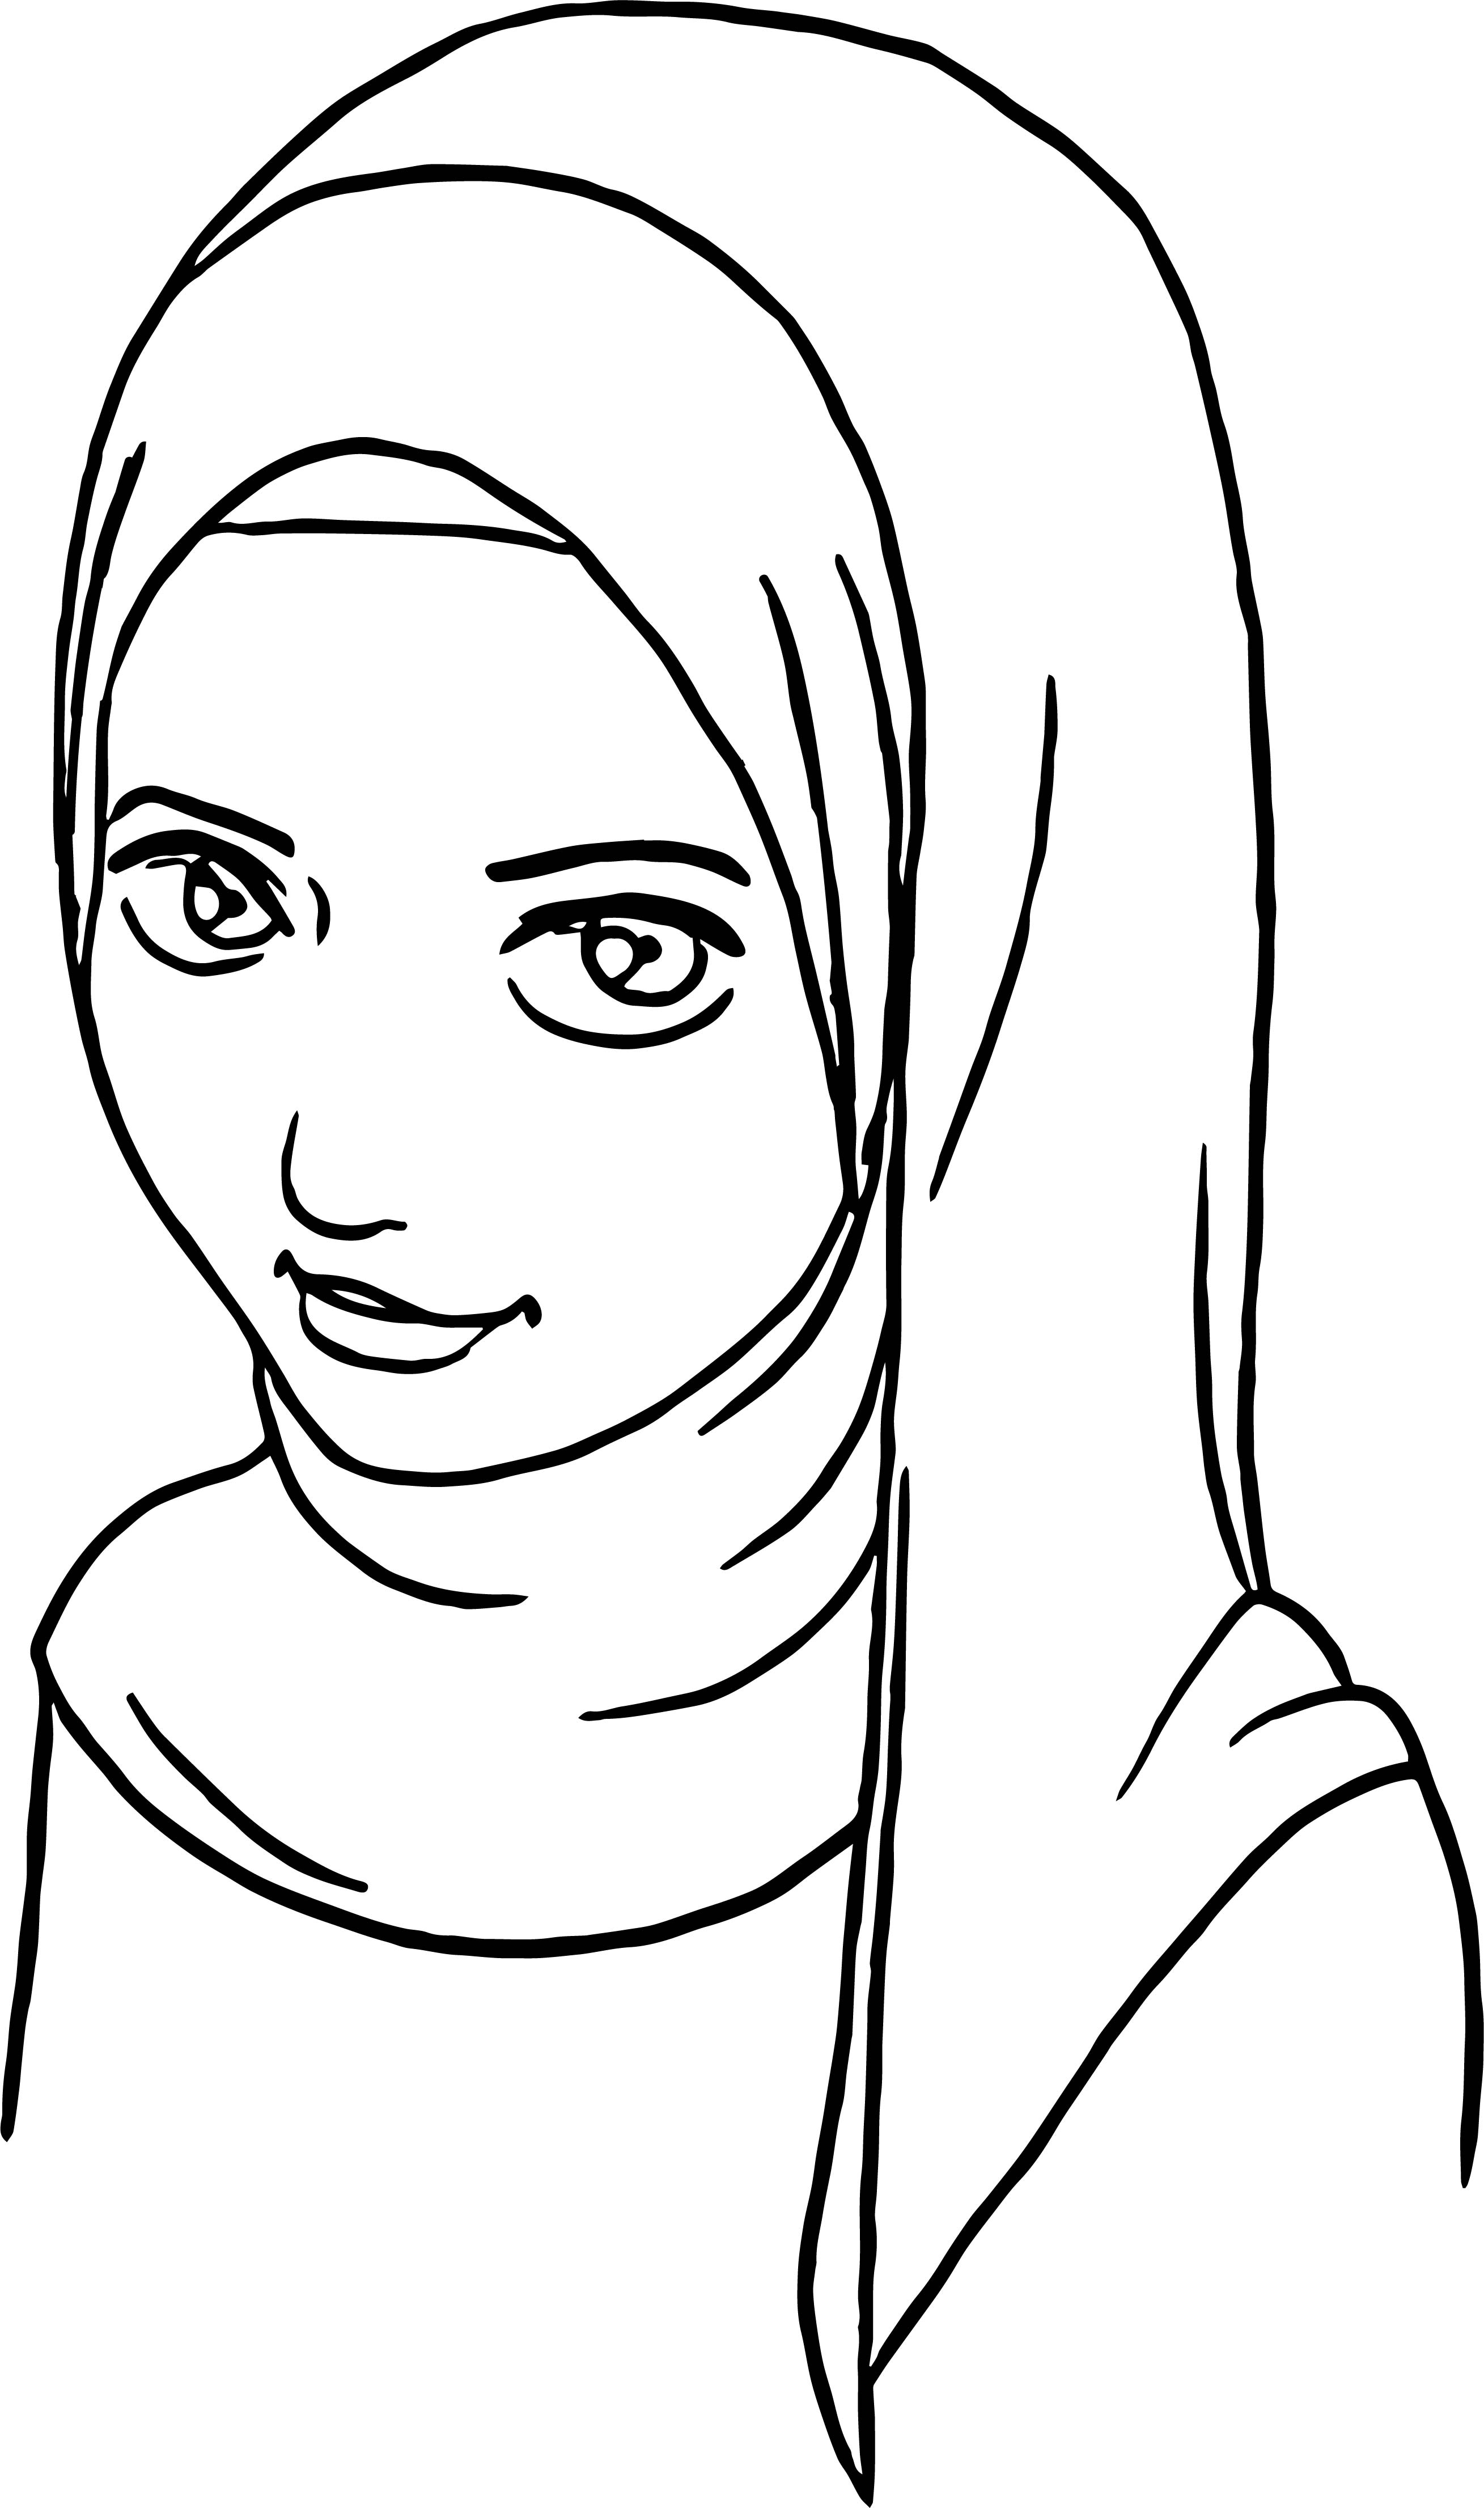 Anime Muslim Girl Coloring Page